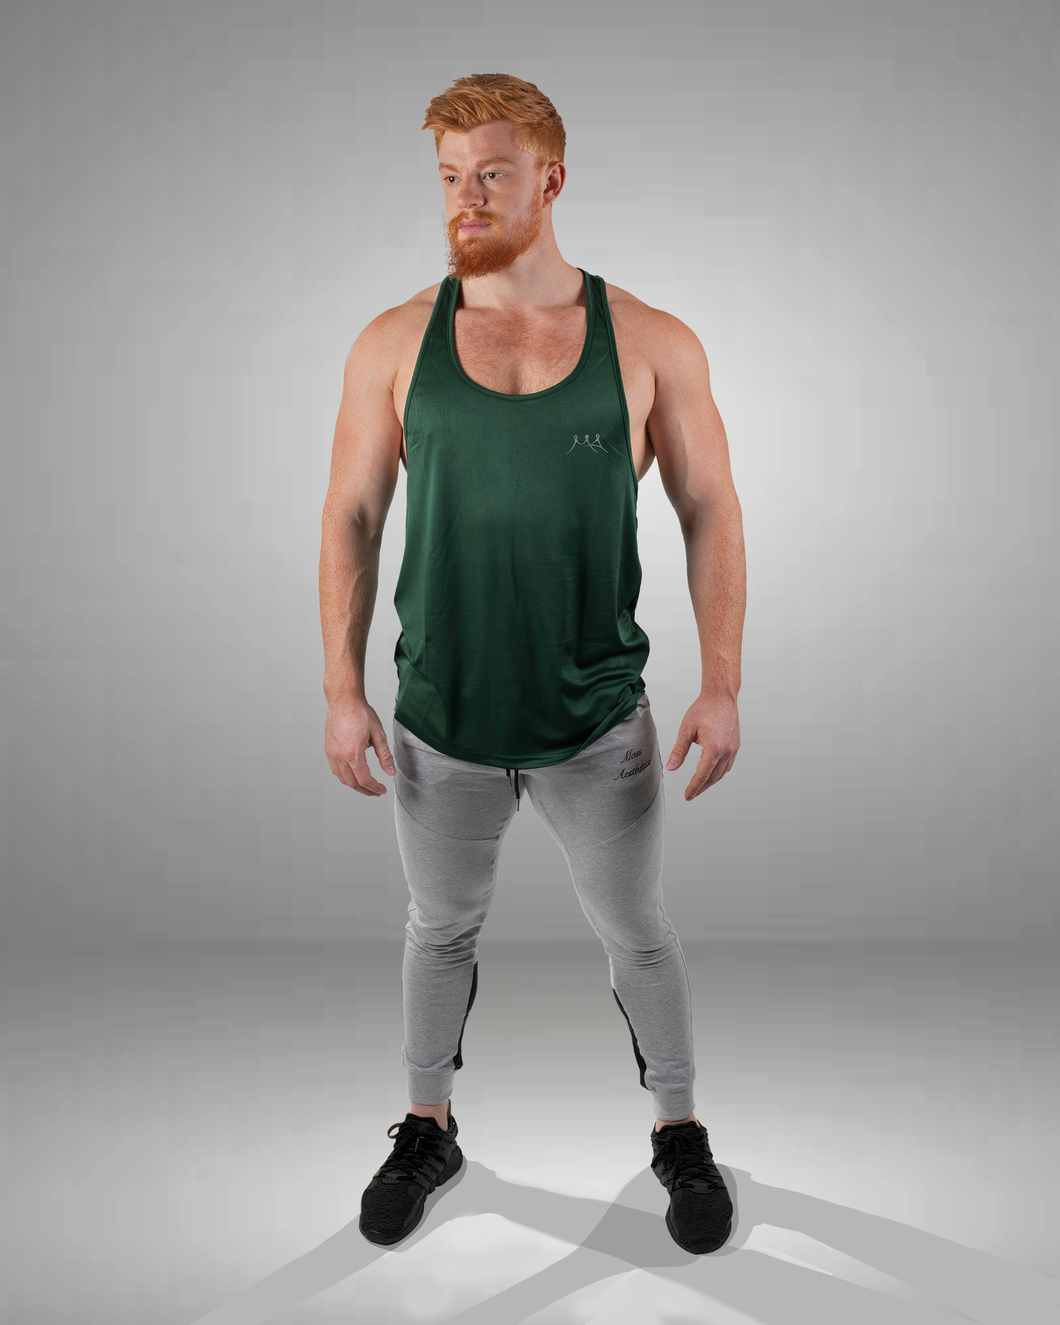 male wearing a myrtle green gym stringer vest